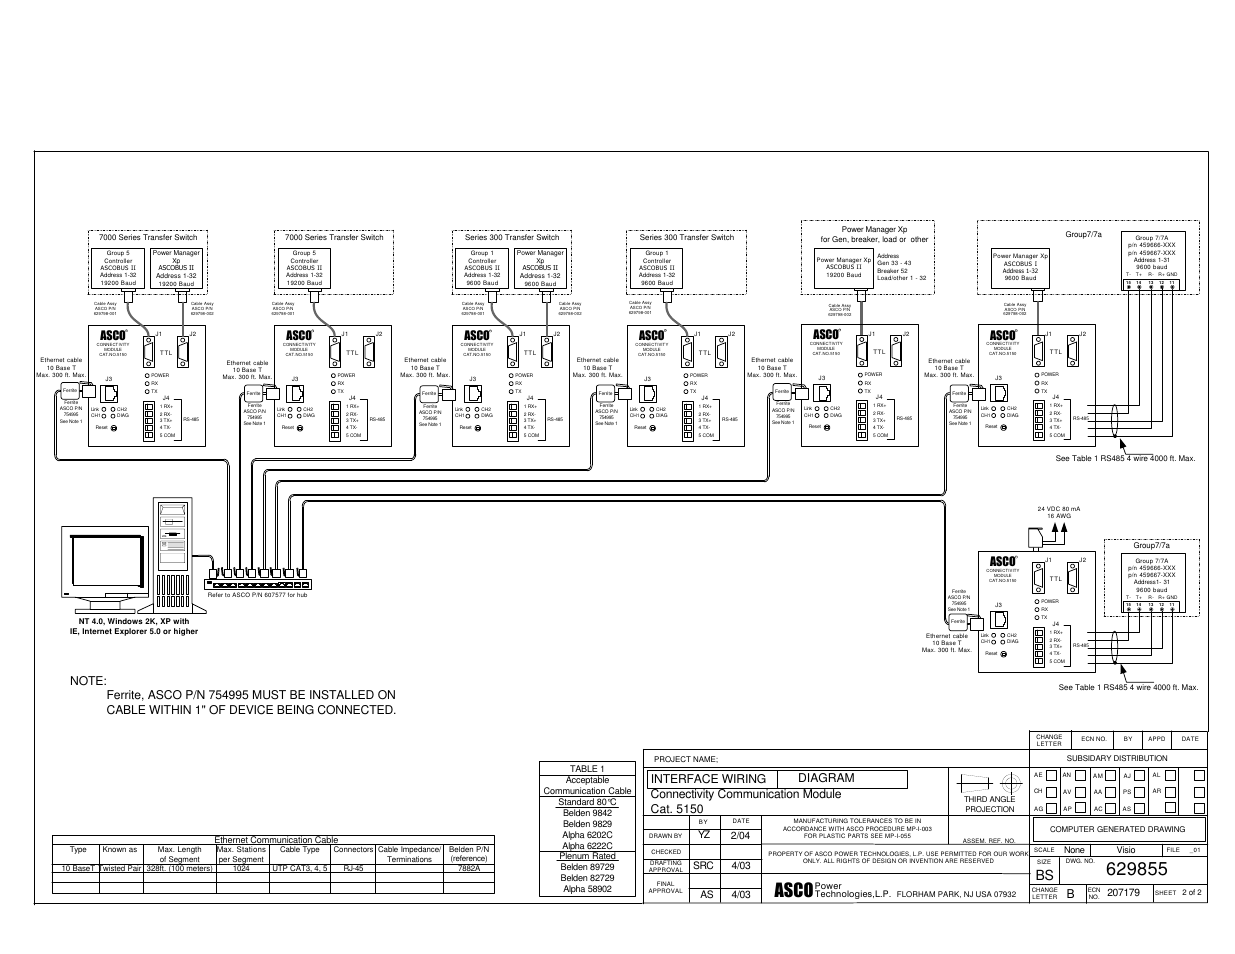 Interface Wiring Diagram  Connectivity Communication Module Cat  5150  Yz As Src